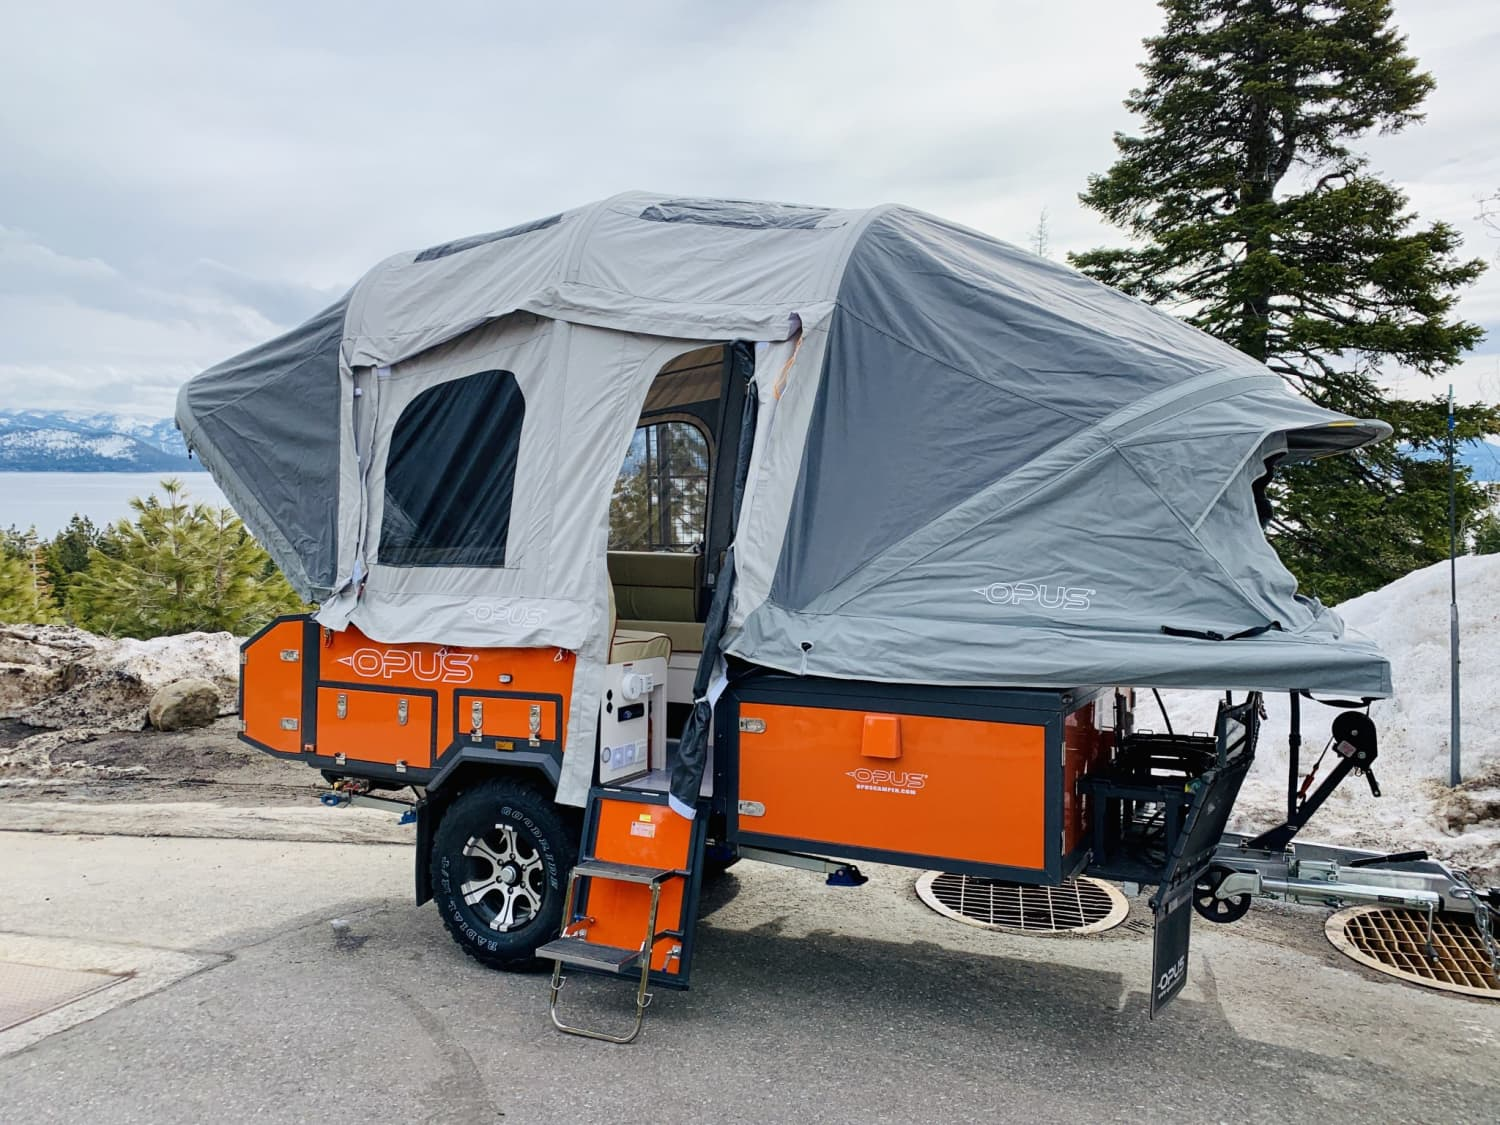 This Tent-Camper Hybrid Inflates in Two Minutes and Sleeps Six People